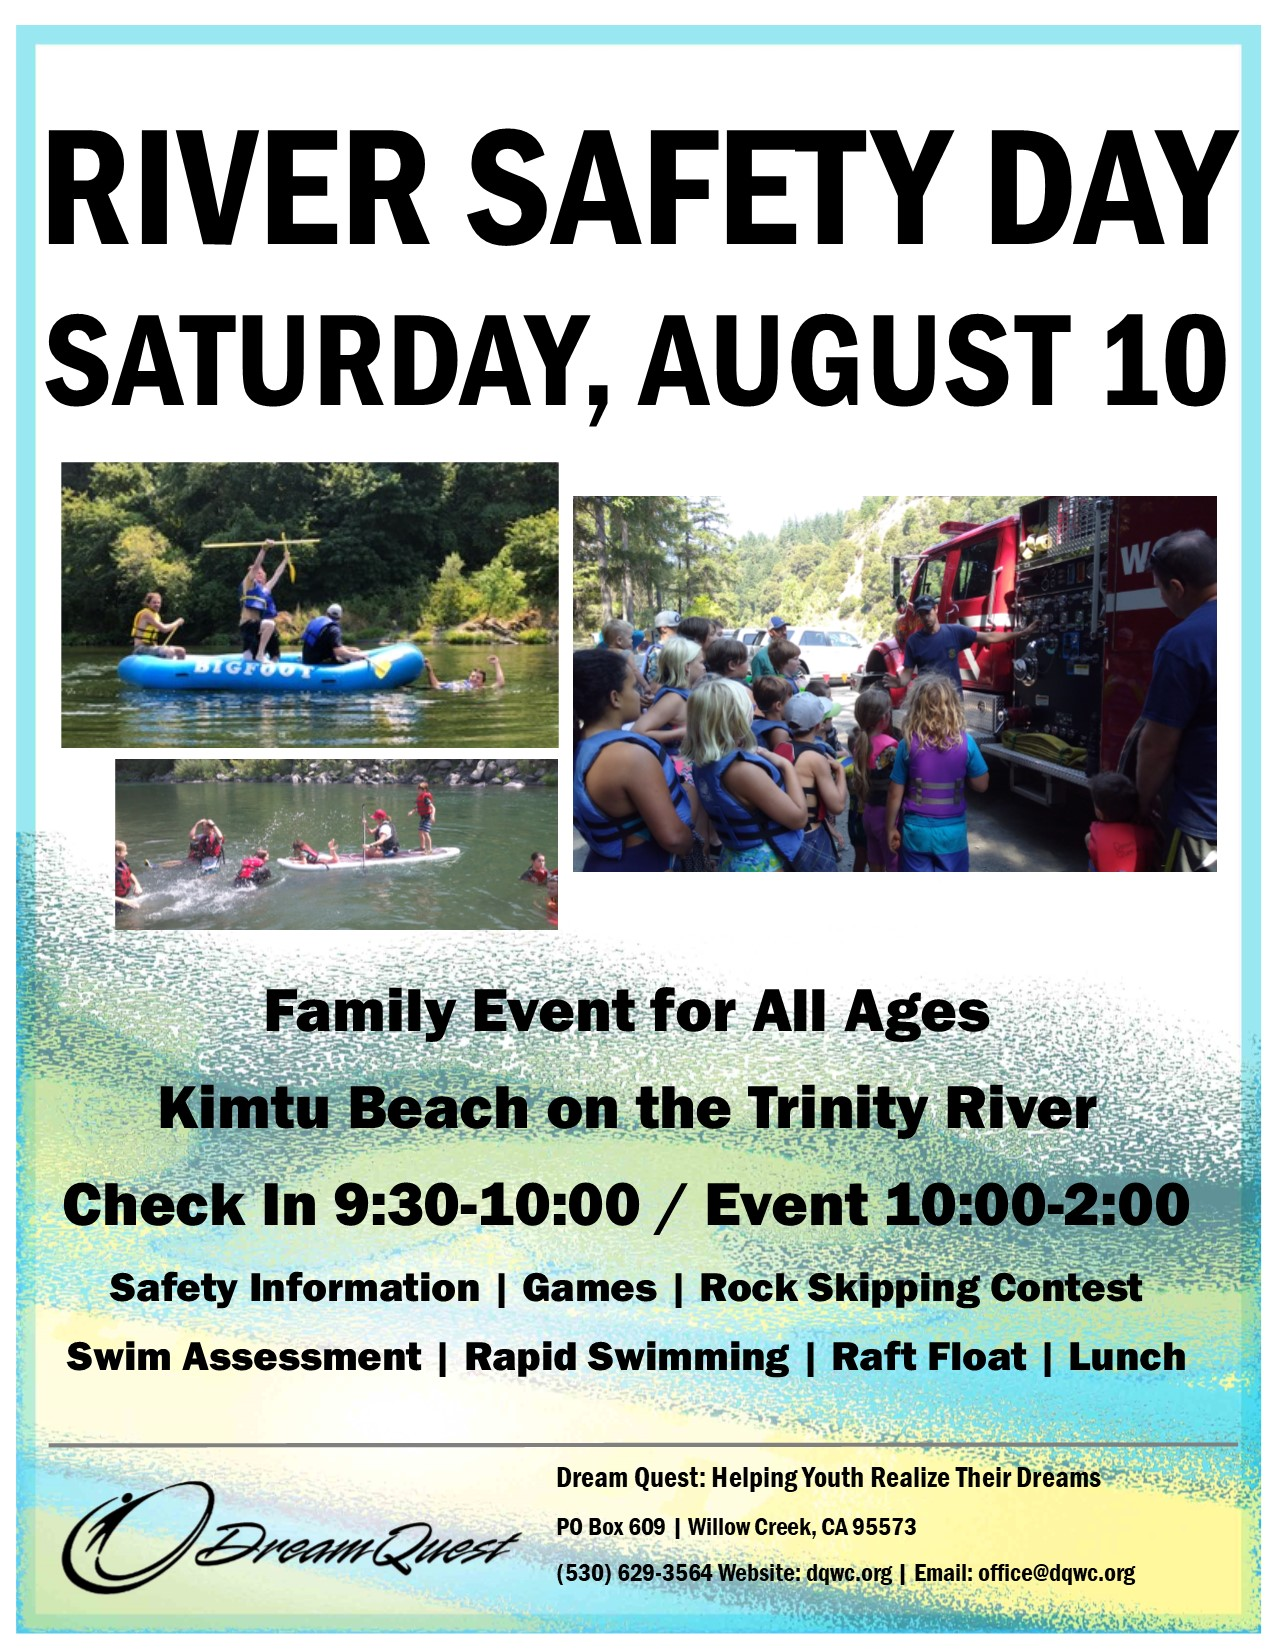 Dream Quest Family River Safety